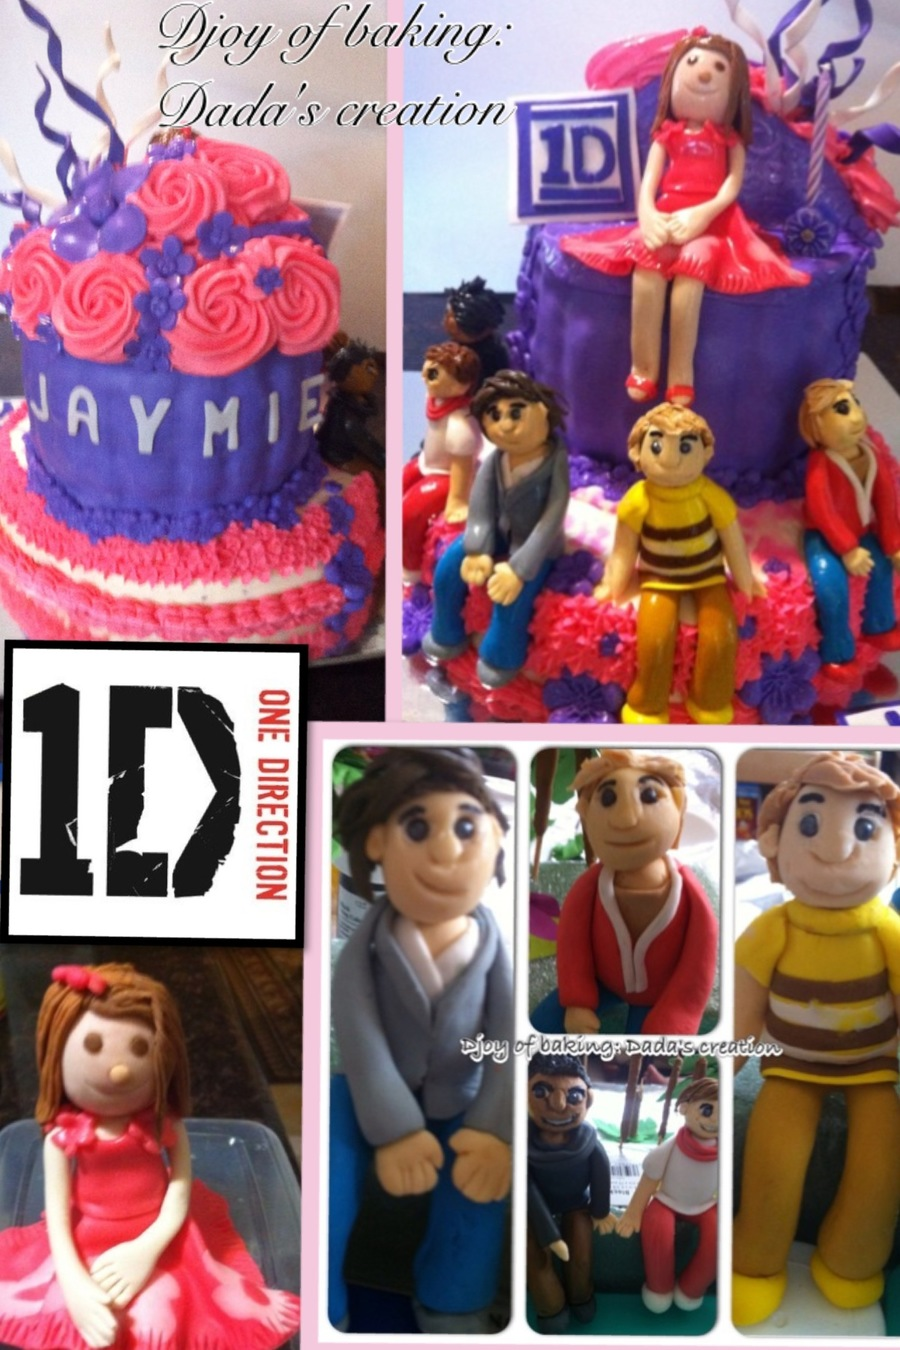 1D (One Direction) Cake on Cake Central